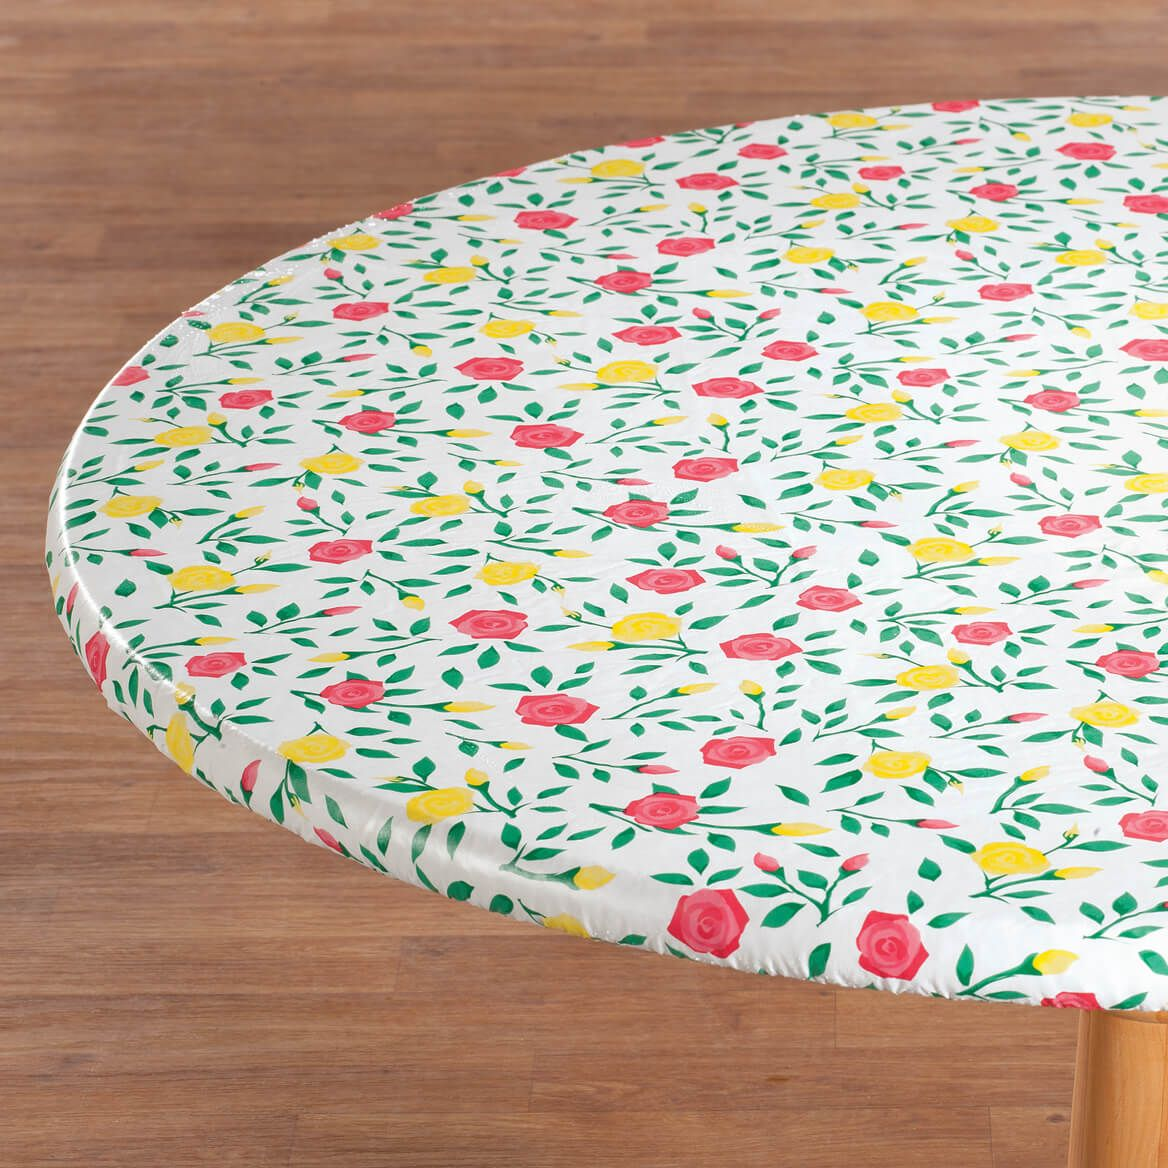 Buds 'n Blooms Vinyl Elasticized Tablecovers-357625